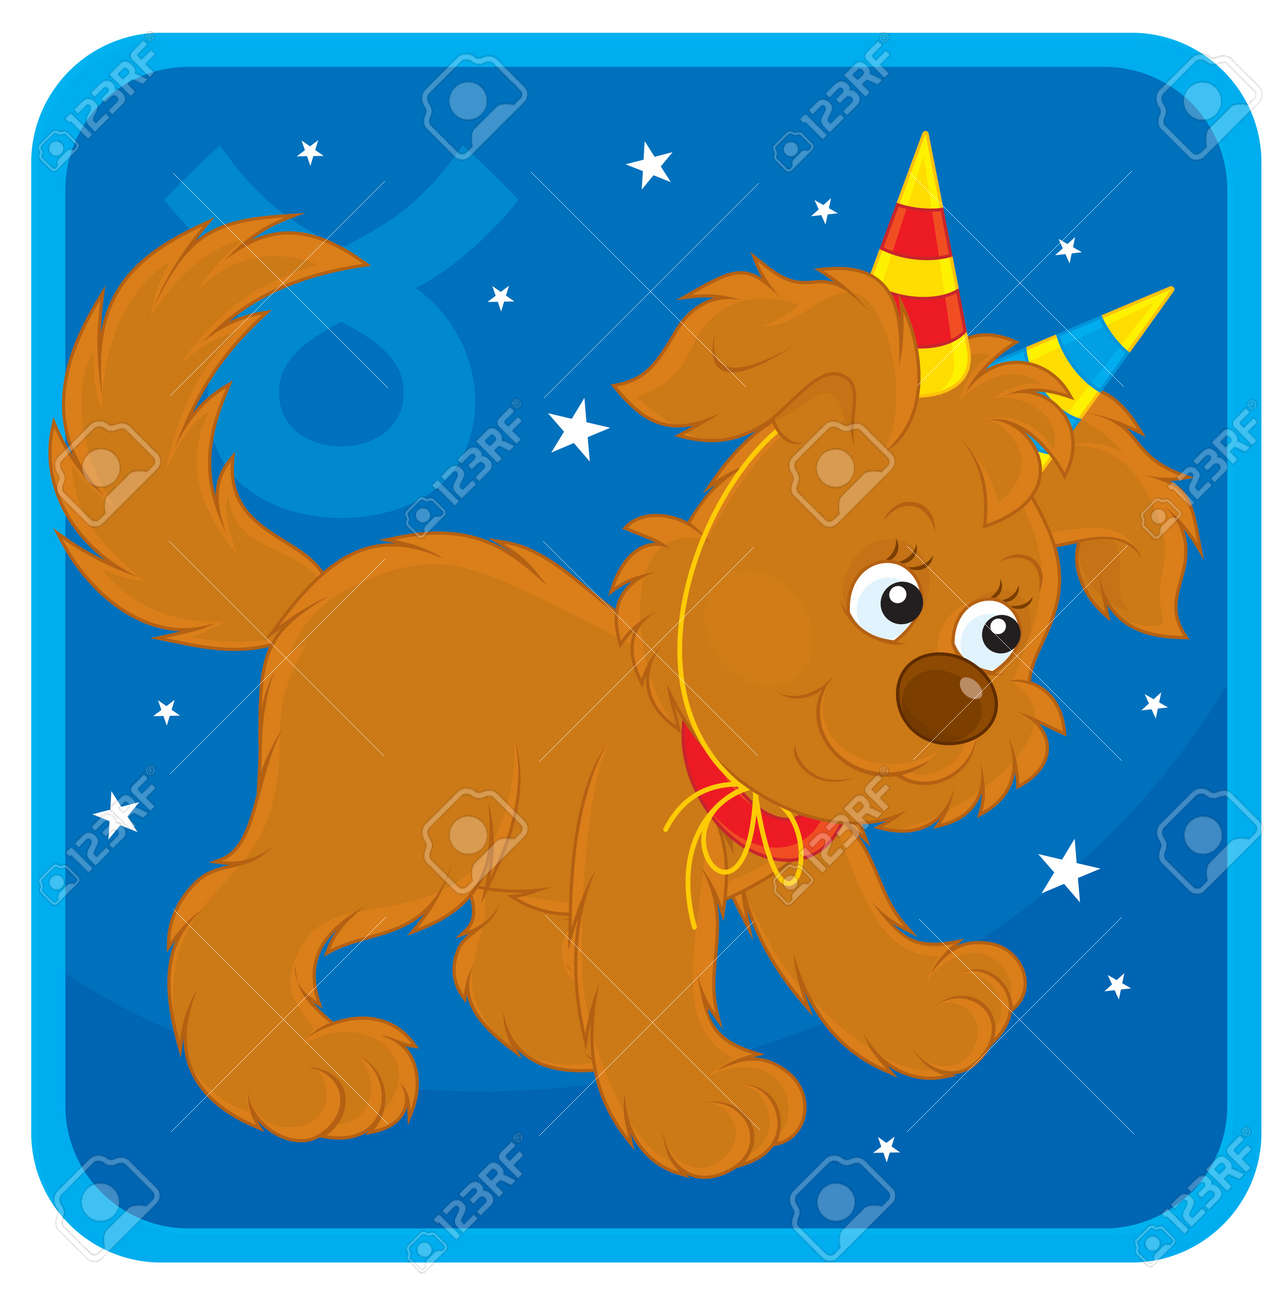 Zodiac sign of Taurus as a pup with toy horns Stock Vector - 17466015